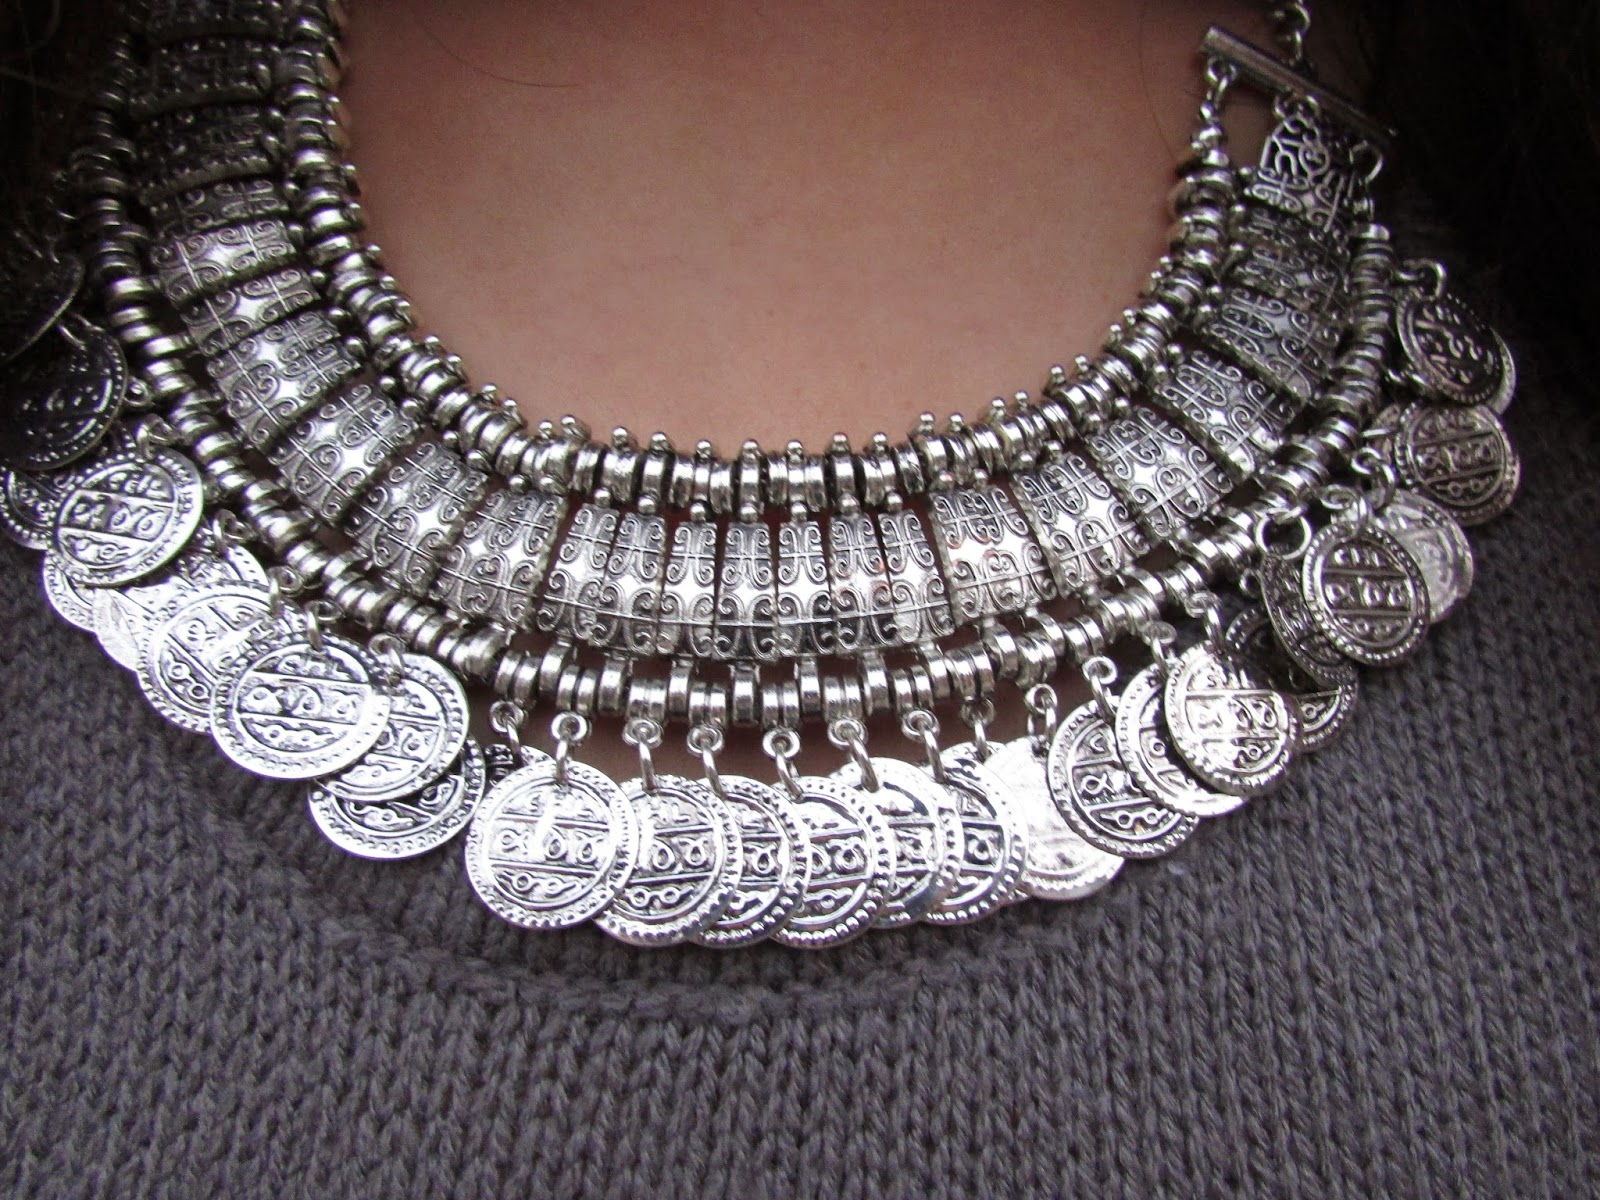 statement necklace, cheap statement necklace, silver necklace , oasap, oasap review, coins necklace, cheap  coins necklace online, Antique Copper Coin Bib Necklace, fashion,winter coat, tweed coat, oasap. fashion, warm winter coat, cheap overcoat, warm coat on sale, gray coat, Oversized Lapels Tweed Coat, winter essentials, winter, oasap sale, bags , bags top , fun prints top , fun printed top , summer printed top , spring printed top , printed top for summers , printed top for spring ,vintage , Floral , vintage shirt , bracelet , pearls , braid , elegant , chic,Statement necklace, necklace, statement necklaces, big necklace, heavy necklaces , gold necklace, silver necklace, silver statement necklace, gold statement necklace, studded statement necklace , studded necklace, stone studded necklace, stone necklace, stove studded statement necklace, stone statement necklace, stone studded gold statement necklace, stone studded silver statement necklace, black stone necklace, black stone studded statement necklace, black stone necklace, black stone statement necklace, neon statement necklace, neon stone statement necklace, black and silver necklace, black and gold necklace, blank and silver statement necklace, black and gold statement necklace, silver jewellery, gold jewellery, stove jewellery, stone studded jewellery, imitation jewellery, artificial jewellery, junk jewellery, cheap jewellery ,oasap Statement necklace, oasap necklace, oasap statement necklaces,oasap big necklace, oasap heavy necklaces , oasap gold necklace, oasap silver necklace, oasap silver statement necklace,oasap gold statement necklace, oasap studded statement necklace , oasap studded necklace, oasap stone studded necklace, oasap stone necklace, oasap stove studded statement necklace, oasap stone statement necklace, oasap stone studded gold statement necklace, oasap stone studded silver statement necklace, oasap black stone necklace, oasap black stone studded statement necklace, oasap black stone necklace, oasap black stone statement necklace, oasap neon statement necklace, oasap neon stone statement necklace, oasap black and silver necklace, oasap black and gold necklace, oasap black  and silver statement necklace, oasap black and gold statement necklace, silver jewellery, oasap gold jewellery, oasap stove jewellery, oasap stone studded jewellery, oasap imitation jewellery, oasap artificial jewellery, oasap junk jewellery, oasap cheap jewellery ,Cheap Statement necklace, Cheap necklace, Cheap statement necklaces,Cheap big necklace, Cheap heavy necklaces , Cheap gold necklace, Cheap silver necklace, Cheap silver statement necklace,Cheap gold statement necklace, Cheap studded statement necklace , Cheap studded necklace, Cheap stone studded necklace, Cheap stone necklace, Cheap stove studded statement necklace, Cheap stone statement necklace, Cheap stone studded gold statement necklace, Cheap stone studded silver statement necklace, Cheap black stone necklace, Cheap black stone studded statement necklace, Cheap black stone necklace, Cheap black stone statement necklace, Cheap neon statement necklace, Cheap neon stone statement necklace, Cheap black and silver necklace, Cheap black and gold necklace, Cheap black  and silver statement necklace, Cheap black and gold statement necklace, silver jewellery, Cheap gold jewellery, Cheap stove jewellery, Cheap stone studded jewellery, Cheap imitation jewellery, Cheap artificial jewellery, Cheap junk jewellery, Cheap cheap jewellery , Black pullover, black and grey pullover, black and white pullover, back cutout, back cutout pullover, back cutout sweater, back cutout jacket, back cutout top, back cutout tee, back cutout tee shirt, back cutout shirt, back cutout dress, back cutout trend, back cutout summer dress, back cutout spring dress, back cutout winter dress, High low pullover, High low sweater, High low jacket, High low top, High low tee, High low tee shirt, High low shirt, High low dress, High low trend, High low summer dress, High low spring dress, High low winter dress, oasap Black pullover, oasap black and grey pullover, oasap black and white pullover, oasap back cutout, oasap back cutout pullover, oasap back cutout sweater, oasap back cutout jacket, oasap back cutout top, oasap back cutout tee, oasap back cutout tee shirt, oasap back cutout shirt, oasap back cutout dress, oasap back cutout trend, oasap back cutout summer dress, oasap back cutout spring dress, oasap back cutout winter dress, oasap High low pullover, oasap High low sweater, oasap High low jacket, oasap High low top, oasap High low tee, oasap High low tee shirt, oasap High low shirt, oasap High low dress, oasap High low trend, oasap High low summer dress, oasap High low spring dress, oasap High low winter dress, Cropped, cropped tee,cropped tee shirt , cropped shirt, cropped sweater, cropped pullover, cropped cardigan, cropped top, cropped tank top, Cheap Cropped, cheap cropped tee,cheap cropped tee shirt ,cheap  cropped shirt, cheap cropped sweater, cheap cropped pullover, cheap cropped cardigan,cheap  cropped top, cheap cropped tank top, oasap Cropped, oasap cropped tee, oasap cropped tee shirt , oasap cropped shirt, oasap cropped sweater, oasap cropped pullover, oasap cropped cardigan, oasap cropped top, oasap cropped tank top, Winter Cropped, winter cropped tee, winter cropped tee shirt , winter cropped shirt, winter cropped sweater, winter cropped pullover, winter cropped cardigan, winter cropped top, winter cropped tank top,Leggings, winter leggings, warm leggings, winter warm leggings, fall leggings, fall warm leggings, tights, warm tights, winter tights, winter warm tights, fall tights, fall warm tights, oasap leggings, oasap tights, oasap warm leggings, oasap warm tights, oasap winter warm tights, oasap fall warm tights, woollen tights , woollen leggings, oasap woollen tights, oasap woollen leggings, woollen bottoms, oasap woollen bottoms, oasap woollen pants , woollen pants,  Christmas , Christmas leggings, Christmas tights, oasap Christmas, oasap Christmas clothes, clothes for Christmas , oasap Christmas leggings, oasap Christmas tights, oasap warm Christmas leggings, oasap warm Christmas  tights, oasap snowflake leggings, snowflake leggings, snowflake tights, oasap rain deer tights, oasap rain deer leggings, ugly Christmas sweater, Christmas tree, Christmas clothes, Santa clause,Wishlist, clothes wishlist, oasap wishlist, oasap, oasap.com, oasap.com wishlist, autumn wishlist,autumn oasap wishlist, autumn clothes wishlist, autumn shoes wishlist, autumn bags wishlist, autumn boots wishlist, autumn pullovers wishlist, autumn cardigans wishlist, autymn coats wishlist, persunmall clothes wishlist, oasap bags wishlist, oasap bags wishlist, oasap boots wishlist, oasap pullover wishlist, oasap cardigans wishlist, oasap autum clothes wishlist, winter clothes, wibter clothes wishlist, winter wishlist, wibter pullover wishlist, winter bags wishlist, winter boots wishlist, winter cardigans wishlist, winter leggings wishlist, oasap winter clothes, oasap autumn clothes, oasap winter collection, oasap autumn collection,Cheap clothes online,cheap dresses online, cheap jumpsuites online, cheap leggings online, cheap shoes online, cheap wedges online , cheap skirts online, cheap jewellery online, cheap jackets online, cheap jeans online, cheap maxi online, cheap makeup online, cheap cardigans online, cheap accessories online, cheap coats online,cheap brushes online,cheap tops online, chines clothes online, Chinese clothes,Chinese jewellery ,Chinese jewellery online,Chinese heels online,Chinese electronics online,Chinese garments,Chinese garments online,Chinese products,Chinese products online,Chinese accessories online,Chinese inline clothing shop,Chinese online shop,Chinese online shoes shop,Chinese online jewellery shop,Chinese cheap clothes online,Chinese  clothes shop online, korean online shop,korean garments,korean makeup,korean makeup shop,korean makeup online,korean online clothes,korean online shop,korean clothes shop online,korean dresses online,korean dresses online,cheap Chinese clothes,cheap korean clothes,cheap Chinese makeup,cheap korean makeup,cheap korean shopping ,cheap Chinese shopping,cheap Chinese online shopping,cheap korean online shopping,cheap Chinese shopping website,cheap korean shopping website, cheap online shopping,online shopping,how to shop online ,how to shop clothes online,how to shop shoes online,how to shop jewellery online,how to shop mens clothes online, mens shopping online,boys shopping online,boys jewellery online,mens online shopping,mens online shopping website,best Chinese shopping website, Chinese online shopping website for men,best online shopping website for women,best korean online shopping,best korean online shopping website,korean fashion,korean fashion for women,korean fashion for men,korean fashion for girls,korean fashion for boys,best chinese online shopping,best chinese shopping website,best chinese online shopping website,wholesale chinese shopping website,wholesale shopping website,chinese wholesale shopping online,chinese wholesale shopping, chinese online shopping on wholesale prices, clothes on wholesale prices,cholthes on wholesake prices,clothes online on wholesales prices,online shopping, online clothes shopping, online jewelry shopping,how to shop online, how to shop clothes online, how to shop earrings online, how to shop,skirts online, dresses online,jeans online, shorts online, tops online, blouses online,shop tops online, shop blouses online, shop skirts online, shop dresses online, shop botoms online, shop summer dresses online, shop bracelets online, shop earrings online, shop necklace online, shop rings online, shop highy low skirts online, shop sexy dresses onle, men's clothes online, men's shirts online,men's jeans online, mens.s jackets online, mens sweaters online, mens clothes, winter coats online, sweaters online, cardigens online,beauty , fashion,beauty and fashion,beauty blog, fashion blog , indian beauty blog,indian fashion blog, beauty and fashion blog, indian beauty and fashion blog, indian bloggers, indian beauty bloggers, indian fashion bloggers,indian bloggers online, top 10 indian bloggers, top indian bloggers,top 10 fashion bloggers, indian bloggers on blogspot,home remedies, how to,oasap online shopping,oasap online shopping review,oasap.com review,oasap online clothing store,oasap online chinese store,oasap online shopping,oasap site review,oasap.com site review, oasap Chines fashion, persunmall , oasap.com, oasap clothing, oasap dresses, oasap shoes, oasap accessories,oasap men cloths ,oasap makeup, oasap helth products,oasap Chinese online shopping, oasap Chinese store, oasap online chinese shopping, oasap lchinese shopping online,oasap, oasap dresses, oasap clothes, oasap garments, oasap clothes, oasap skirts, oasap pants, oasap tops, oasap cardigans, oasap leggings, oasap fashion , oasap clothes fashion, oasap footwear, oasap fashion footwear, oasap jewellery, oasap fashion jewellery, oasap rings, oasap necklace, oasap bracelets, oasap earings,Autumn, fashion, oasap, wishlist,Winter,fall, fall abd winter, winter clothes , fall clothes, fall and winter clothes, fall jacket, winter jacket, fall and winter jacket, fall blazer, winter blazer, fall and winter blazer, fall coat , winter coat, falland winter coat, fall coverup, winter coverup, fall and winter coverup, outerwear, coat , jacket, blazer, fall outerwear, winter outerwear, fall and winter outerwear, woolen clothes, wollen coat, woolen blazer, woolen jacket, woolen outerwear, warm outerwear, warm jacket, warm coat, warm blazer, warm sweater, coat , white coat, white blazer, white coat, white woolen blazer, white coverup, white woolens,oasap online shopping review,oasap.com review,oasap online clothing store,oasap online chinese store,oasap online shopping,oasap site review,oasap.com site review, oasap Chines fashion, oasap , oasap.com, oasap clothing, oasap dresses, oasap shoes, oasap accessories,oasap men cloths ,oasap makeup, oasap helth products,oasap Chinese online shopping, oasap Chinese store, oasap online chinese shopping, oasap chinese shopping online,oasap, oasap dresses, oasap clothes, oasap garments, oasap clothes, oasap skirts, persunmall pants, oasap tops, oasap cardigans, oasap leggings, oasap fashion , oasap clothes fashion, oasap footwear, oasap fashion footwear, oasap jewellery, oasap fashion jewellery, oasap rings, oasap necklace, oasap bracelets, oasap earings,latest fashion trends online, online shopping, online shopping in india, online shopping in india from america, best online shopping store , best fashion clothing store, best online fashion clothing store, best online jewellery store, best online footwear store, best online store, beat online store for clothes, best online store for footwear, best online store for jewellery, best online store for dresses, worldwide shipping free, free shipping worldwide, online store with free shipping worldwide,best online store with worldwide shipping free,low shipping cost, low shipping cost for shipping to india, low shipping cost for shipping to asia, low shipping cost for shipping to korea,Friendship day , friendship's day, happy friendship's day, friendship day outfit, friendship's day outfit, how to wear floral shorts, floral shorts, styling floral shorts, how to style floral shorts, how to wear shorts, how to style shorts, how to style style denim shorts, how to wear denim shorts,how to wear printed shorts, how to style printed shorts, printed shorts, denim shorts, how to style black shorts, how to wear black shorts, how to wear black shorts with black T-shirts, how to wear black T-shirt, how to style a black T-shirt, how to wear a plain black T-shirt, how to style black T-shirt,how to wear shorts and T-shirt, what to wear with floral shorts, what to wear with black floral shorts,how to wear all black outfit, what to wear on friendship day, what to wear on a date, what to wear on a lunch date, what to wear on lunch, what to wear to a friends house, what to wear on a friends get together, what to wear on friends coffee date , what to wear for coffee,beauty,Pink, pink pullover, pink sweater, pink jumpsuit, pink sweatshirt, neon pink, neon pink sweater, neon pink pullover, neon pink jumpsuit , neon pink cardigan, cardigan , pink cardigan, sweater, jumper, jumpsuit, pink jumper, neon pink jumper, pink jacket, neon pink jacket, winter clothes, oversized coat, oversized winter clothes, oversized pink coat, oversized coat, oversized jacket, oasap pink, oasap pink sweater, oasap pink jacket, oasap pink cardigan, oasap pink coat, oasap pink jumper, oasap neon pink, oasap neon pink jacket, oasap neon pink coat, oasap neon pink sweater, oasap neon pink jumper, oasap neon pink pullover, pink pullover, neon pink pullover,fur,furcoat,furjacket,furblazer,fur pullover,fur cardigan,front open fur coat,front open fur jacket,front open fur blazer,front open fur pullover,front open fur cardigan,real fur, real fur coat,real fur jacket,real fur blazer,real fur pullover,real fur cardigan, soft fur,soft fur coat,soft fur jacket,soft furblazer,soft fur pullover,sof fur cardigan, white fur,white fur coat,white fur jacket,white fur blazer, white fur pullover, white fur cardigan,trench, trench coat, trench coat online, trench coat india, trench coat online India, trench cost price, trench coat price online, trench coat online price, cheap trench coat, cheap trench coat online, cheap trench coat india, cheap trench coat online India, cheap trench coat , Chinese trench coat, Chinese coat, cheap Chinese trench coat, Korean coat, Korean trench coat, British coat, British trench coat, British trench coat online, British trench coat online, New York trench coat, New York trench coat online, cheap new your trench coat, American trench coat, American trench coat online, cheap American trench coat, low price trench coat, low price trench coat online , low price trench coat online india, low price trench coat india, oasap trench, oasap trench coat, oasap trench coat online, oasap trench coat india, oasap trench coat online India, oasap trench cost price,oasap trench coat price online, oasap trench coat online price, oasap cheap trench coat, oasap cheap trench coat online, oasap cheap trench coat india, oasap cheap trench coat online India, oasap cheap trench coat , oasap Chinese trench coat, oasap Chinese coat, oasap cheap Chinese trench coat, oasap Korean coat, oasap Korean trench coat, oasap British coat, oasap British trench coat, oasap British trench coat online, oasap British trench coat online, oasap New York trench coat, oasap New York trench coat online, oasap cheap new your trench coat, oasap American trench coat, oasap American trench coat online, oasap cheap American trench coat, oasap low price trench coat, oasap low price trench coat online , oasap low price trench coat online india, oasap low price trench coat india, how to wear trench coat, how to wear trench, how to style trench coat, how to style coats, how to style long coats, how to style winter coats, how to style winter trench coats, how to style winter long coats, how to style warm coats, how to style beige coat, how to style beige long coat, how to style beige trench coat, how to style beige coat, beige coat, beige long coat, beige long coat, beige frock coat, beige double breasted coat, double breasted coat, how to style frock coat, how to style double breasted coat, how to wear beige trench coat,how to wear beige coat, how to wear beige long coat, how to wear beige frock coat, how to wear beige double button coat, how to wear beige double breat coat, double button coat, what us trench coat, uses of trench coat, what is frock coat, uses of frock coat, what is long coat, uses of long coat, what is double breat coat, uses of double breasted coat, what is bouton up coat, uses of button up coat, what is double button coat, uses of double button coat, velvet leggings, velvet tights, velvet bottoms, embroided velvet leggings, embroided velvet tights, pattern tights, velvet pattern tights, floral tights , floral velvet tights, velvet floral tights, embroided  velvet leggings, pattern leggings , velvet pattern leggings , floral leggings , floral velvet leggings, velvet floral leggings ,oasap velvet leggings, oasap velvet tights, oasap velvet bottoms,oasap embroided velvet leggings,oasap embroided velvet tights, oasap pattern tights, oasap velvet pattern tights, oasap floral tights , oasap floral velvet tights, oasap velvet floral tights, oasap embroided  velvet leggings, oasap pattern leggings , oasap velvet pattern leggings , oasap floral leggings ,oasap floral velvet leggings, oasap velvet floral leggings , free , giveaway , free clothes,Giveaway, giveaways,clothes giveaway, clothes giveaways, shoes giveaways, jewellery giveaway, jewellery giveaways, online clothes giveaway, online shoes giveaway, online jewellery giveaway, , clothes and shoes giveaway , clothes and jewellery giveaway, jewellery and shoes giveaway, online shoes and clothes giveaway,online jewellery and clothes giveaway, free clothes , beauty , fashion,beauty and fashion,beauty blog, fashion blog , indian beauty blog,indian fashion blog, beauty and fashion blog, indian beauty and fashion blog, indian bloggers, indian beauty bloggers, indian fashion bloggers,indian bloggers online, top 10 indian bloggers, top indian bloggers,top 10 fashion bloggers, indian bloggers on blogspot,home remedies, how to